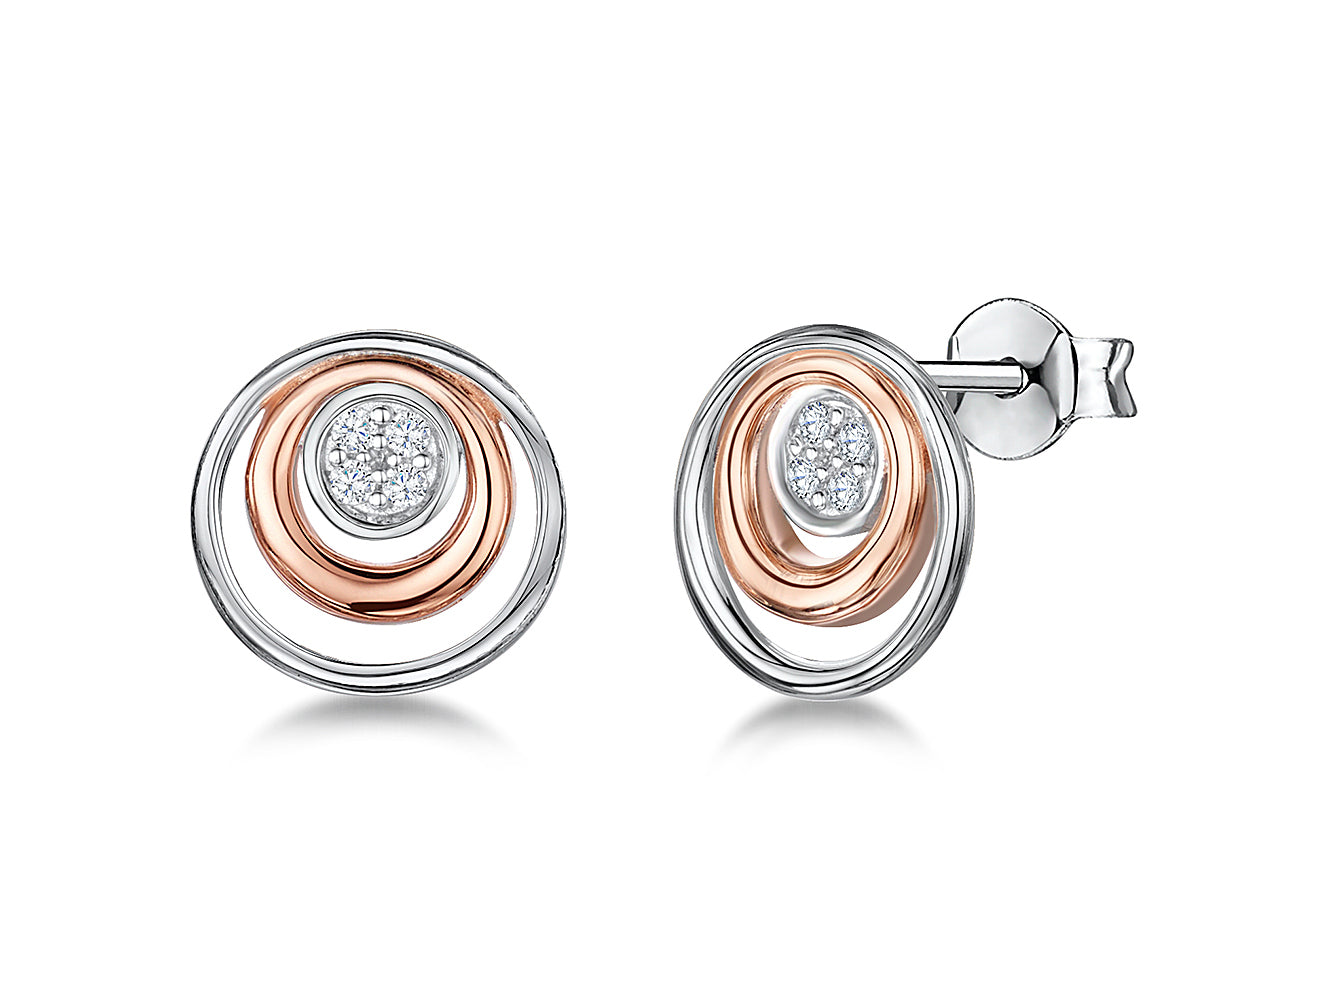 Sterling Silver And Rose Gold Double Circle Earrings - JOOLS By Jenny Brown